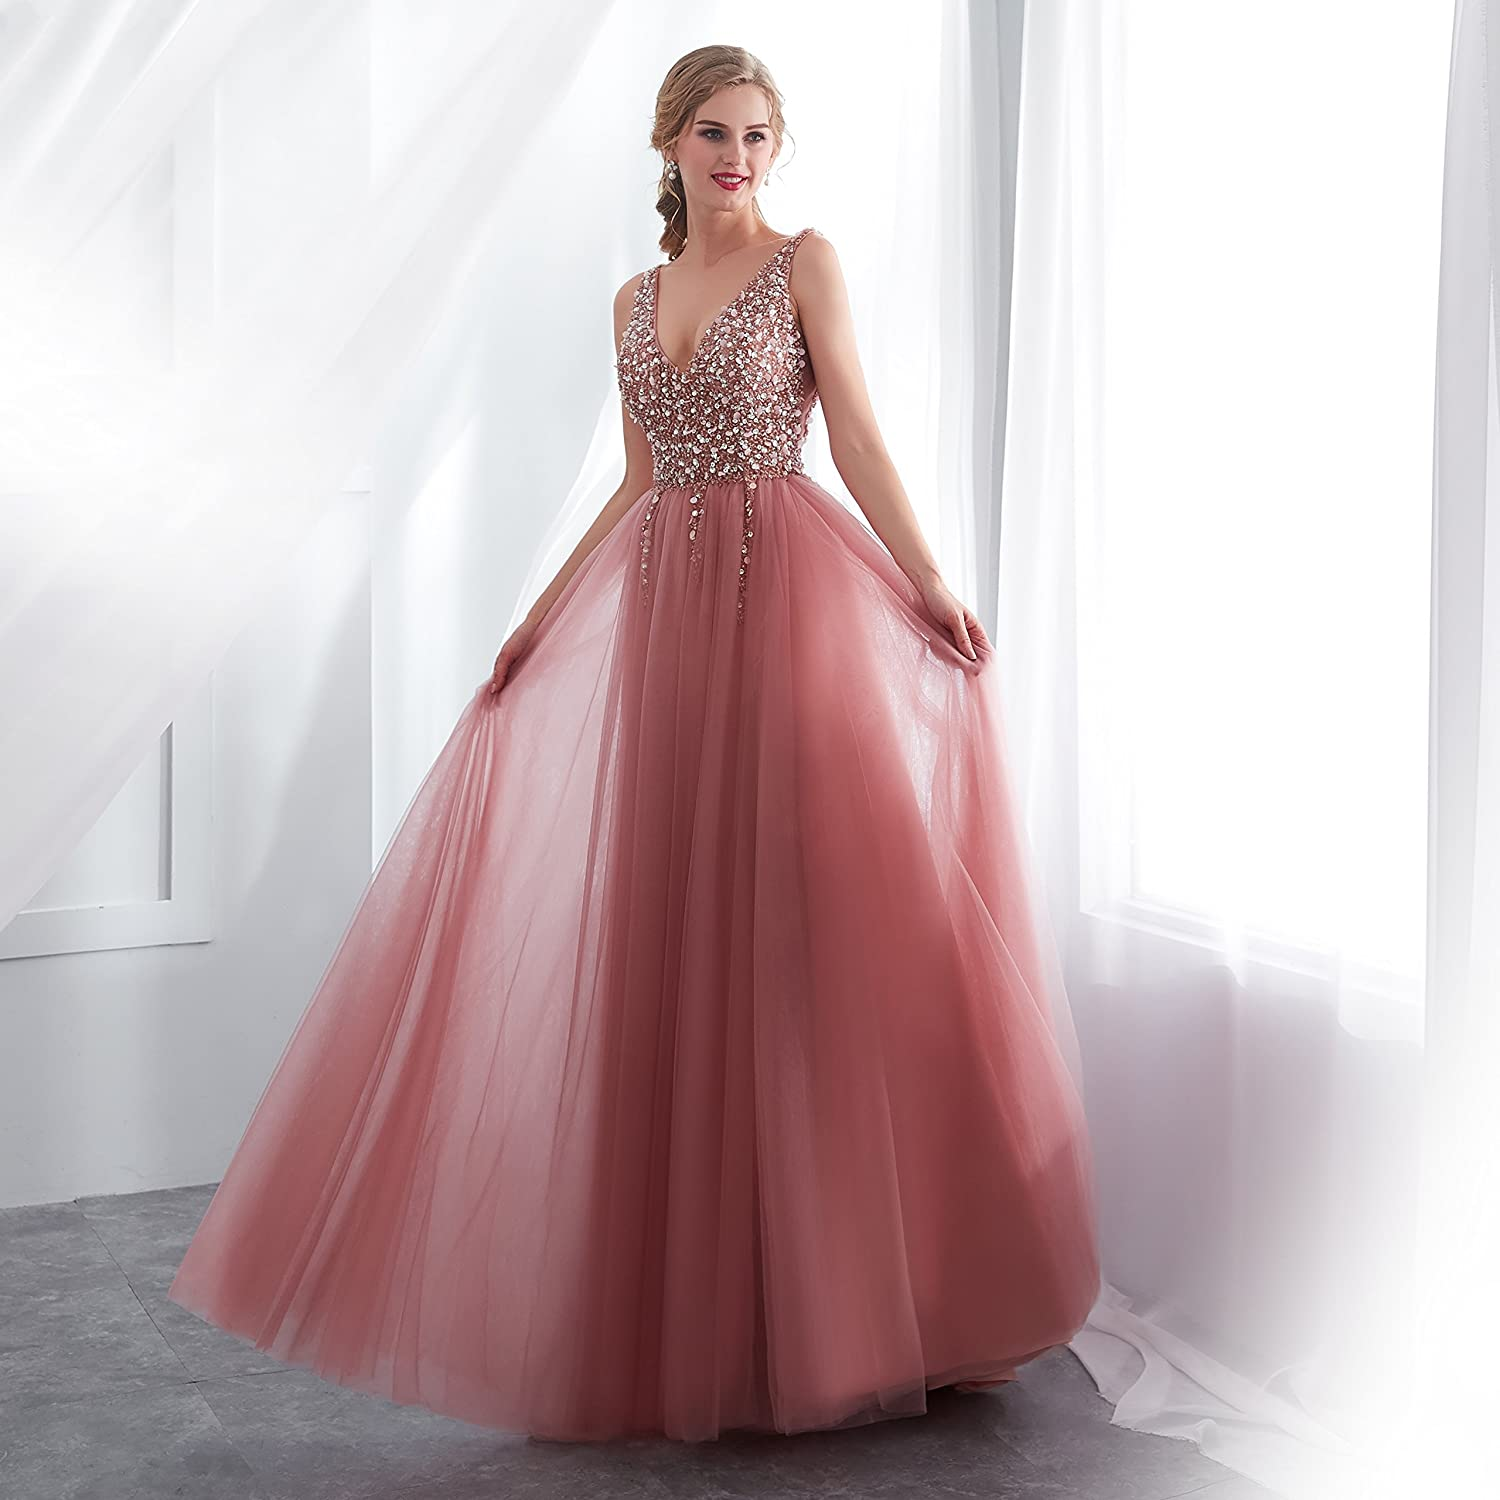 fba6dfbd0c34 JINGDRESS Women Sparkly Pale Mauve Tulle Bridesmaid Dresses Sequins Beads  Long Bling Maxi Evening Dressing Gowns at Amazon Women's Clothing store: